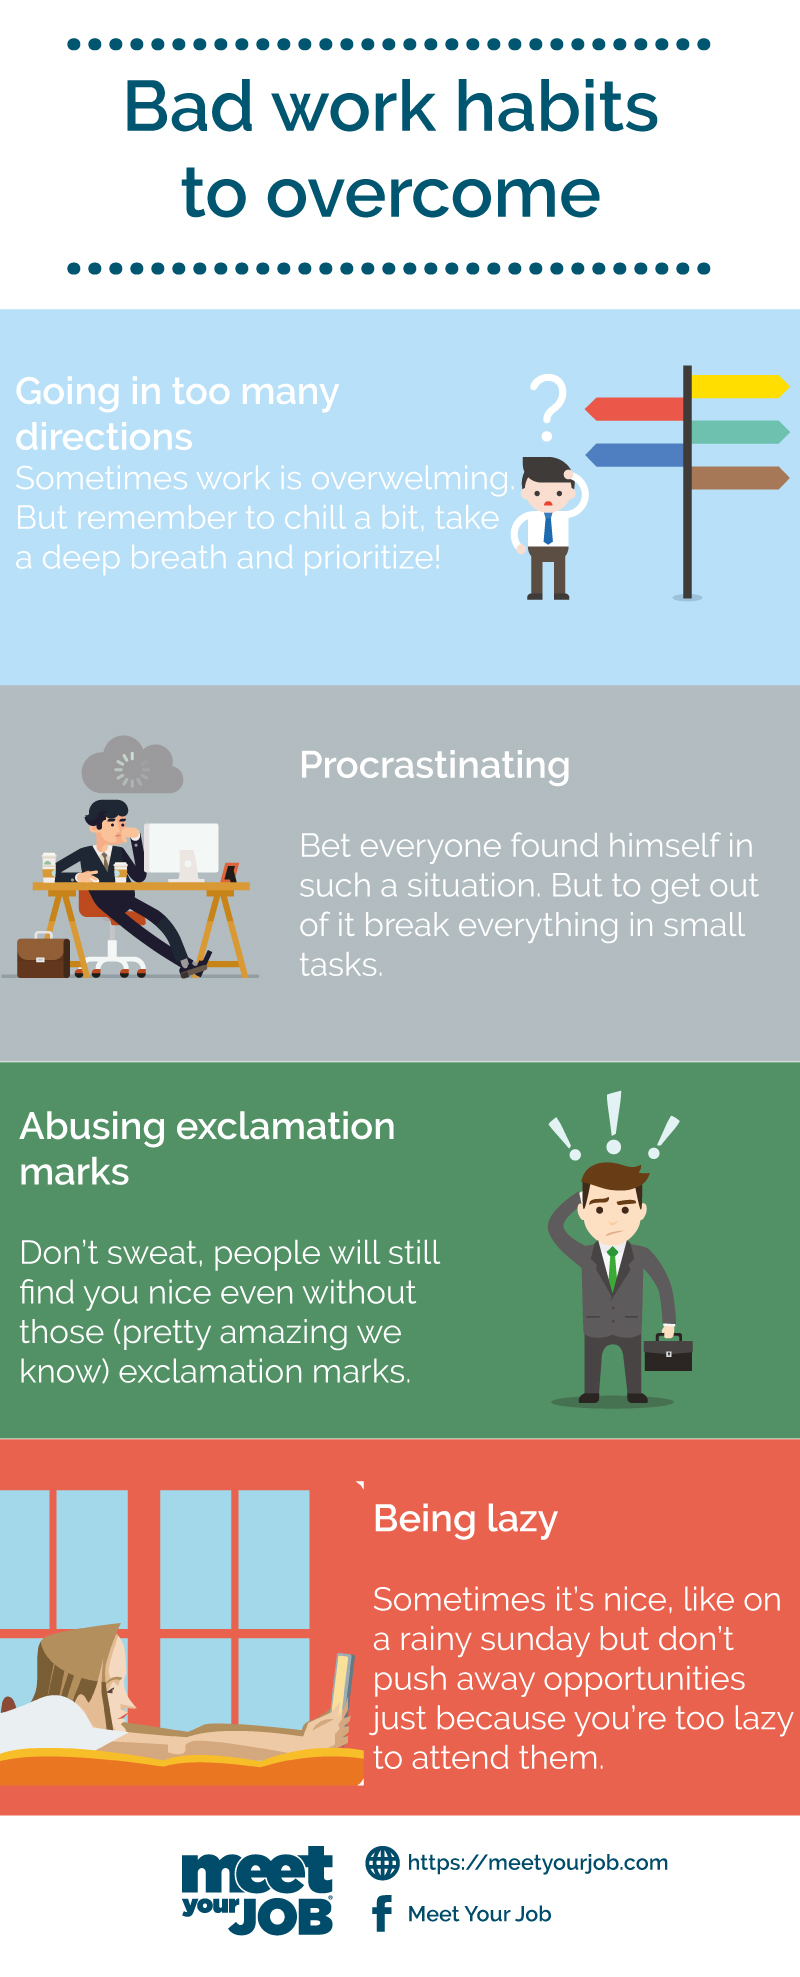 bad-work-habits-2020-infographic